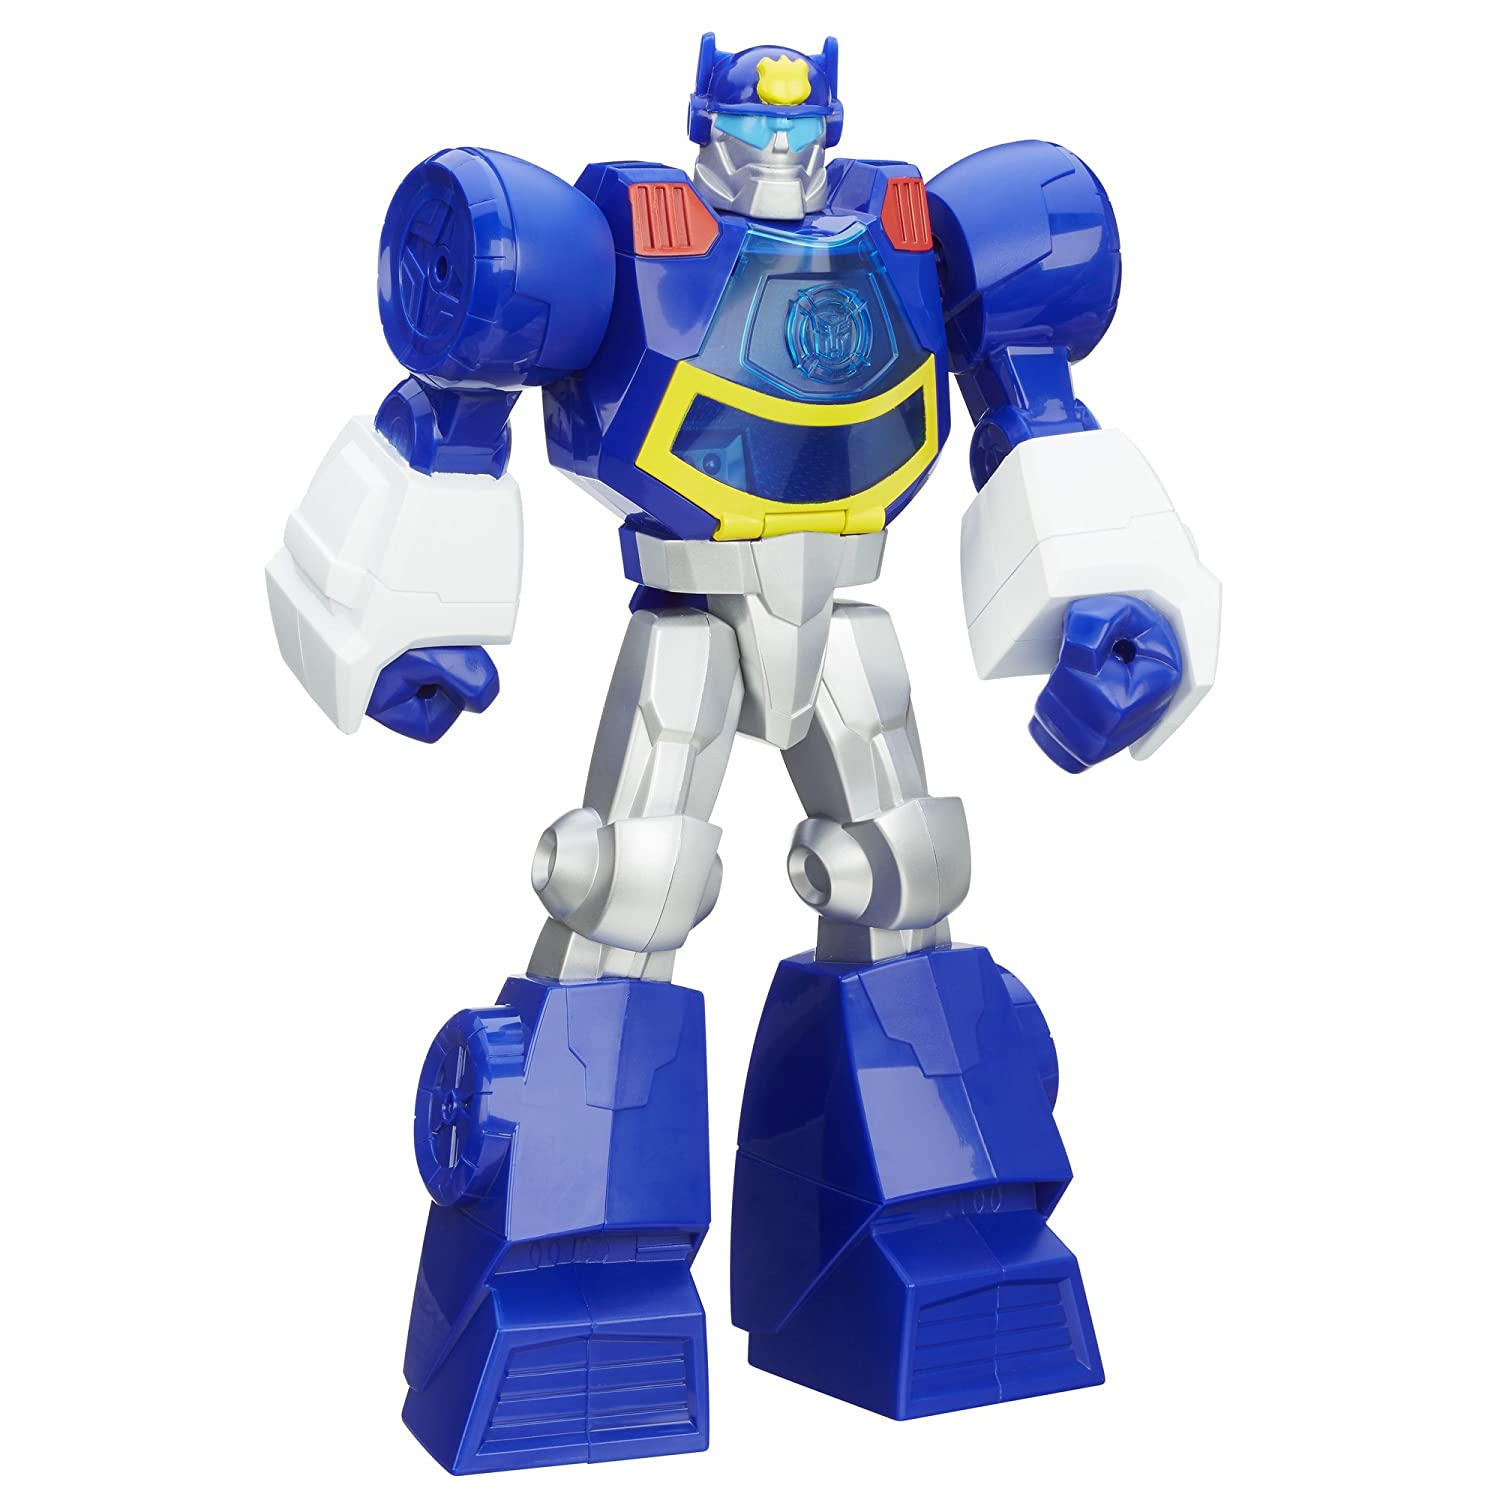 PLAYSKOOL TRANSFORMERS RESCUE BOTS CHASE THE POLICE-BOT FIGURE RESCUE by TRANSFORMERS RESCUE FIGURE BOTS fcda92